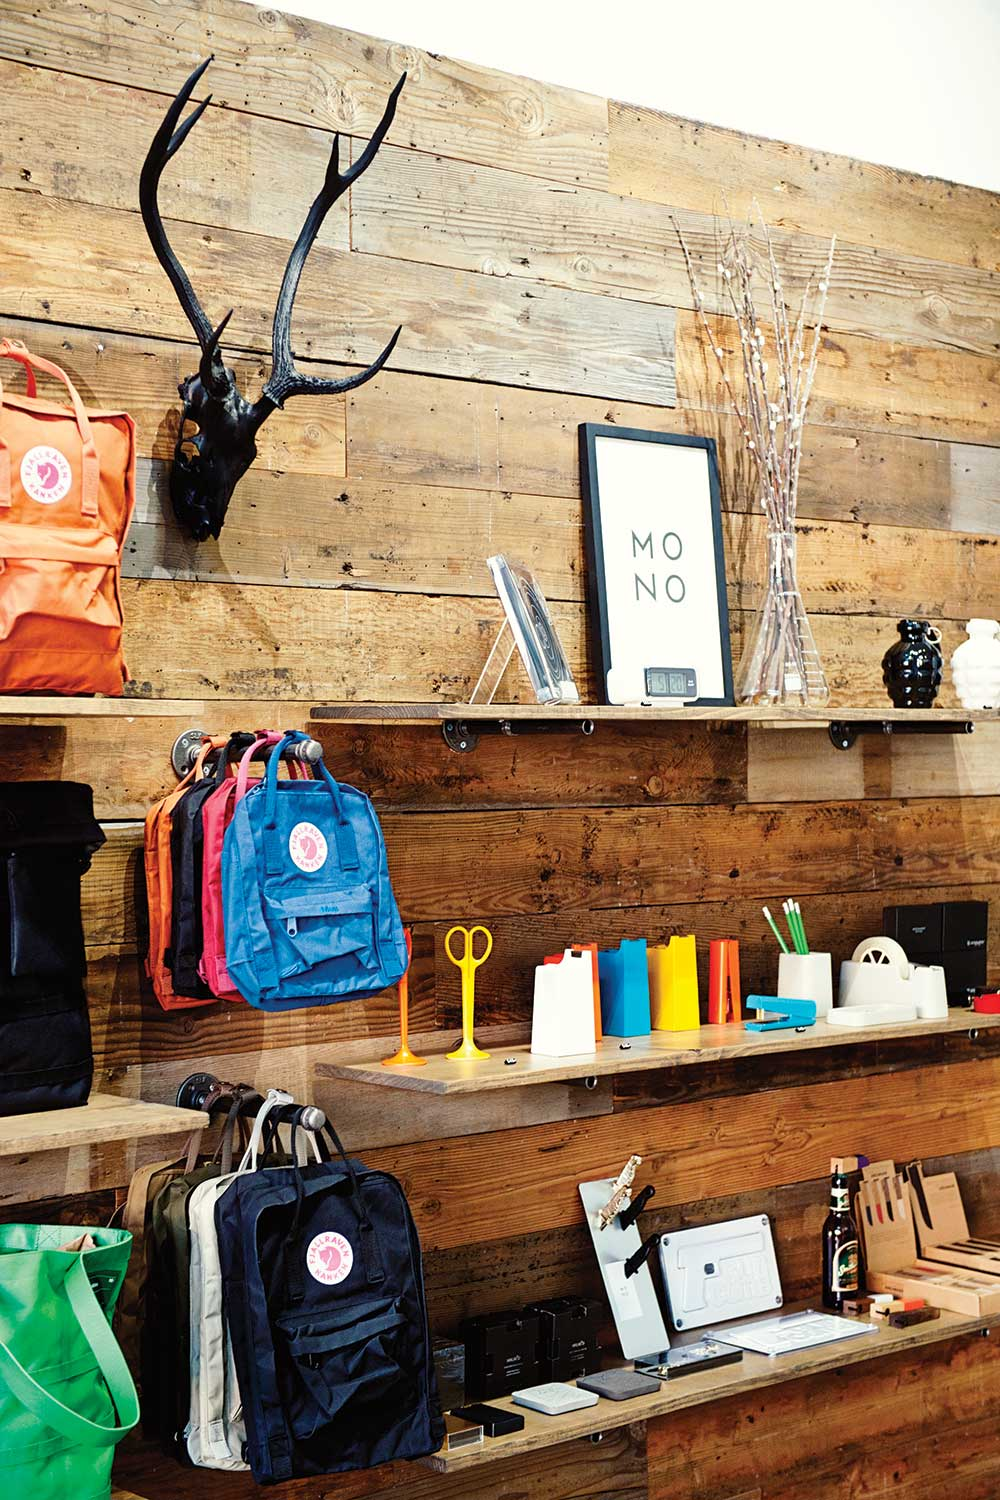 wall of Mono shop with deer antlers, backpacks and assorted accessories